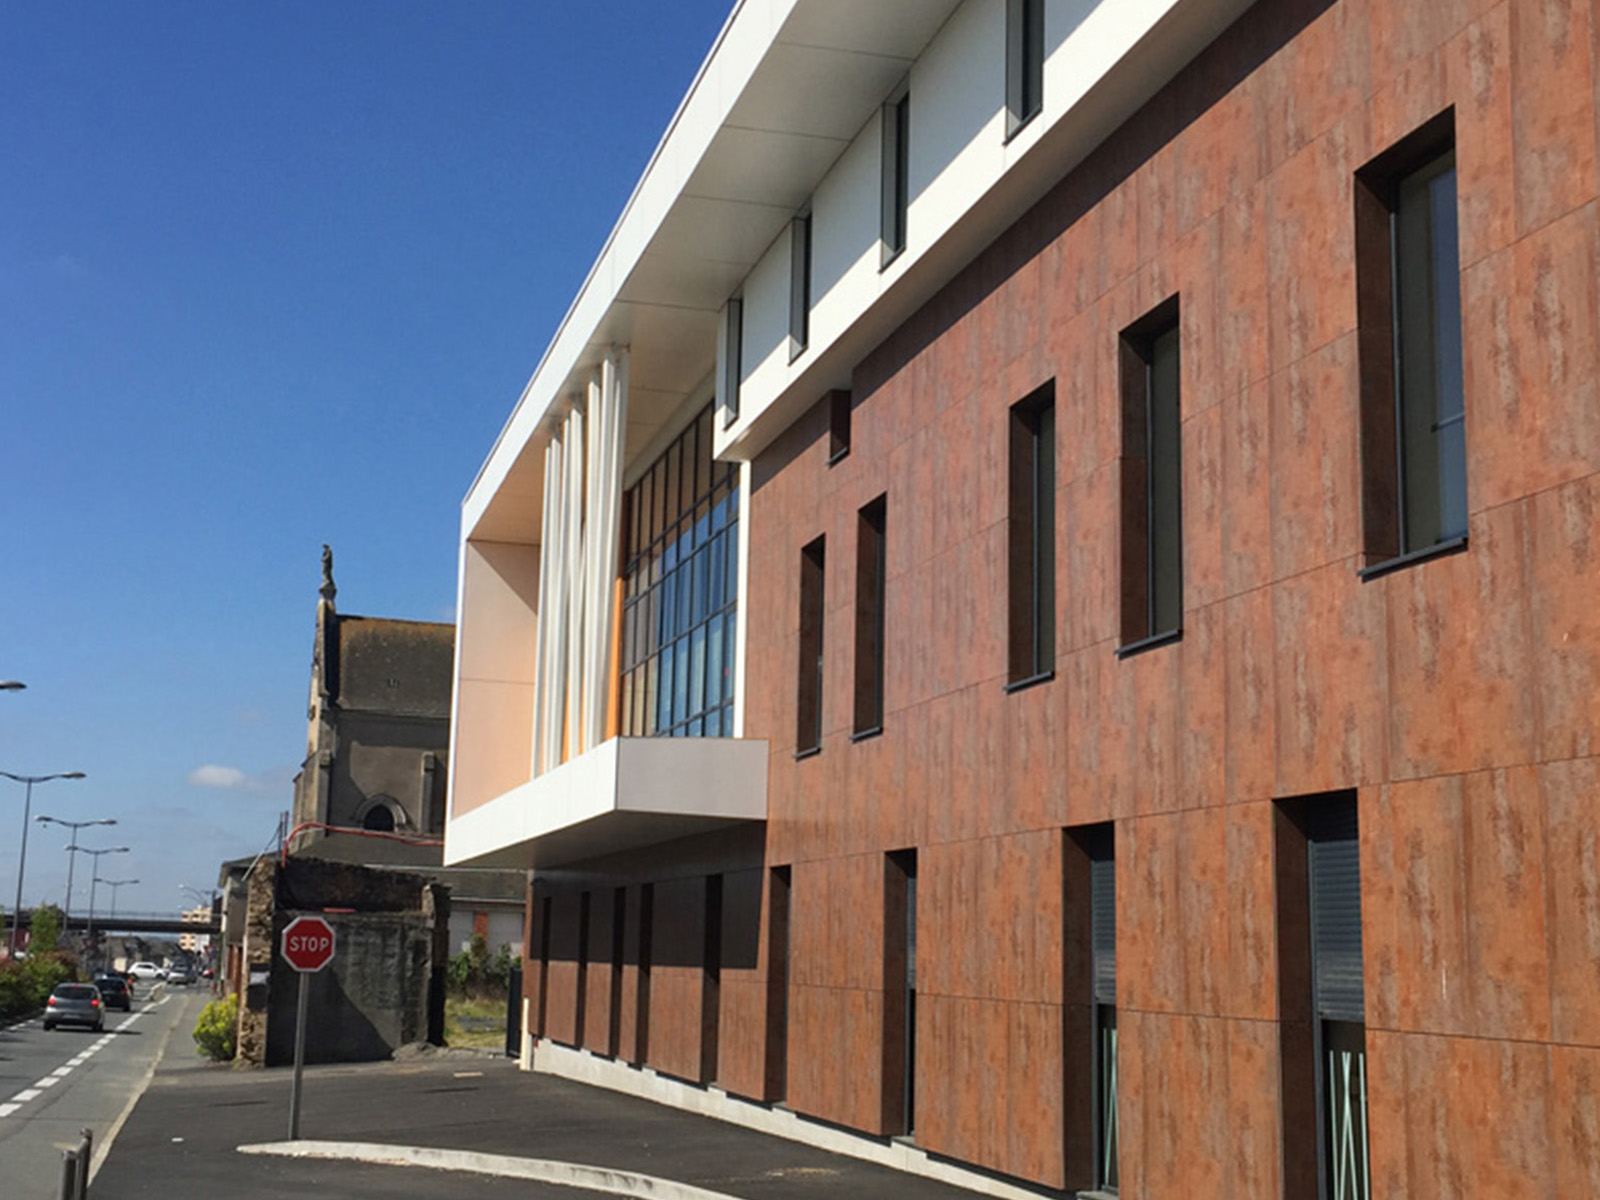 ehpad-cholet-architecture